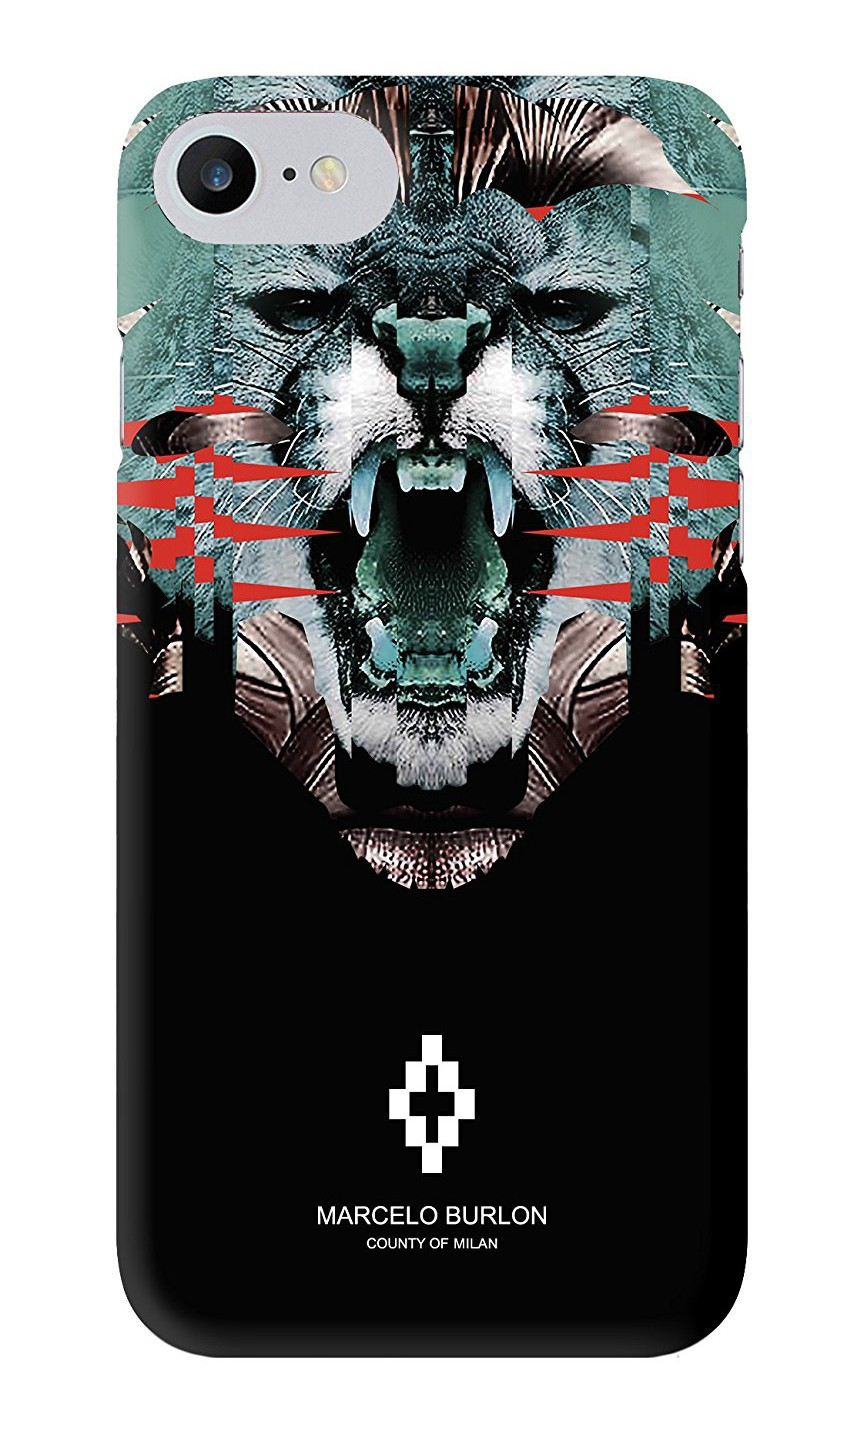 finest selection b1e06 29994 Marcelo Burlon - Matawen Cover - iPhone 8 / 7 - Apple - County of Milan -  Printed Case